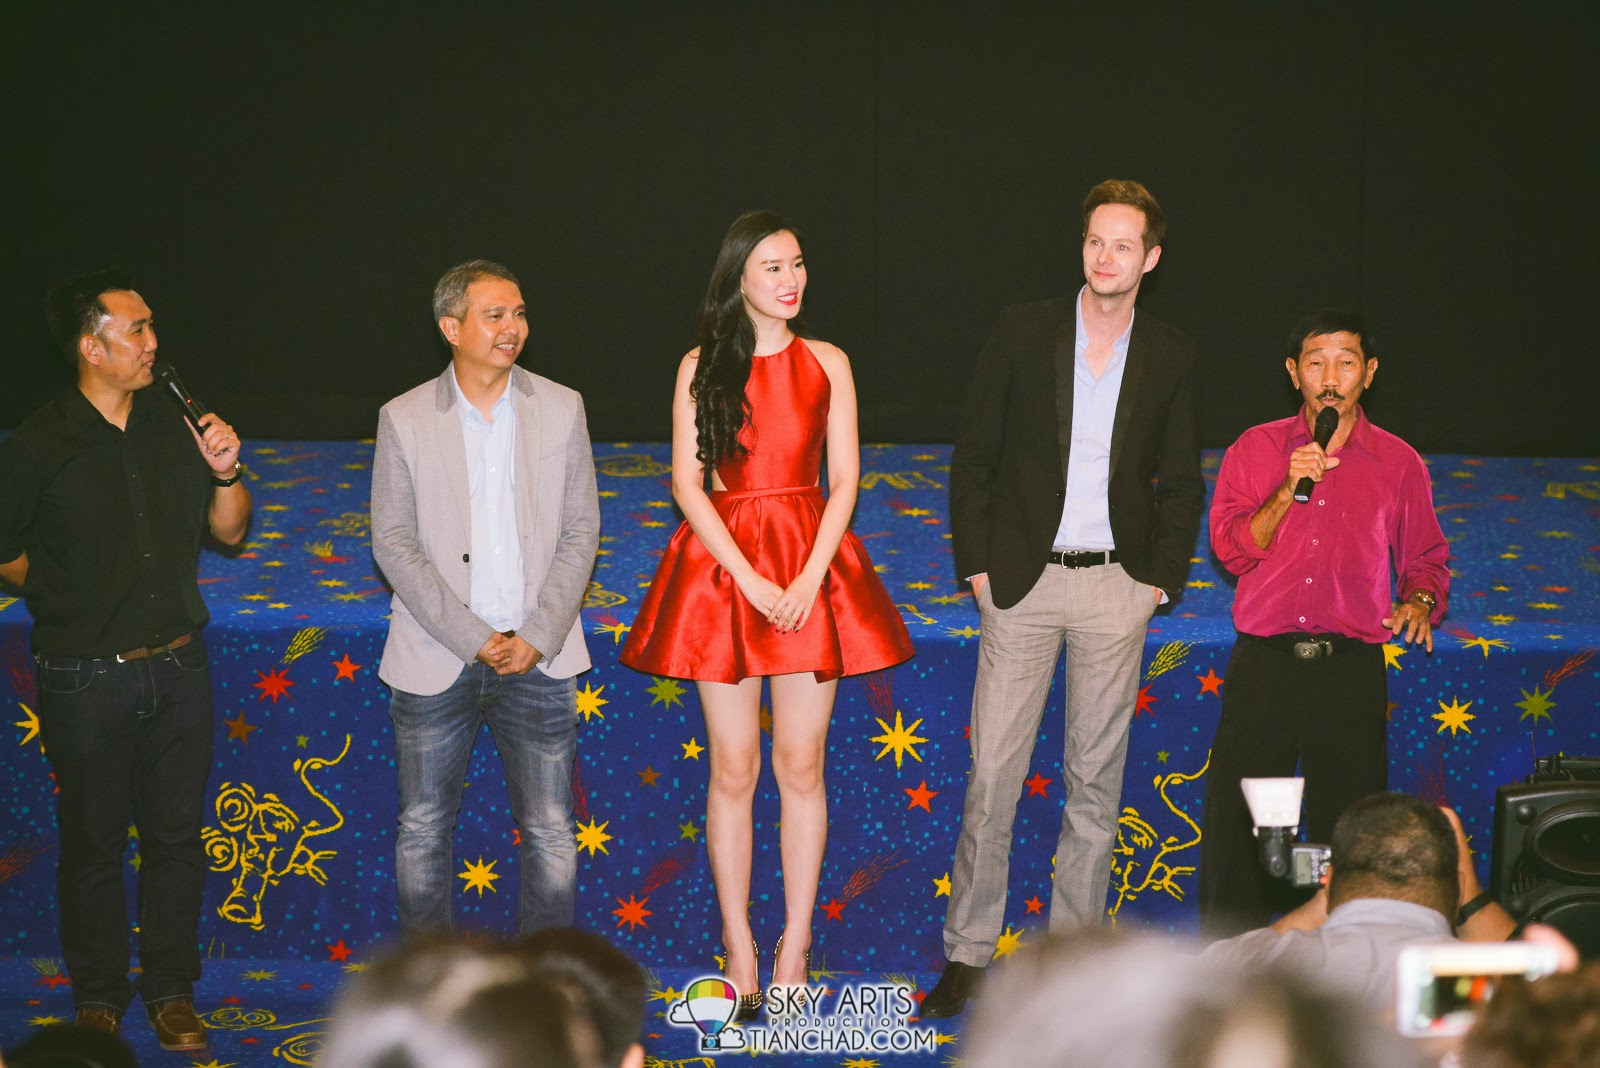 一路有你 The Journey Gala Premiere @ Paradigm Mall  开幕前致词与感谢支持